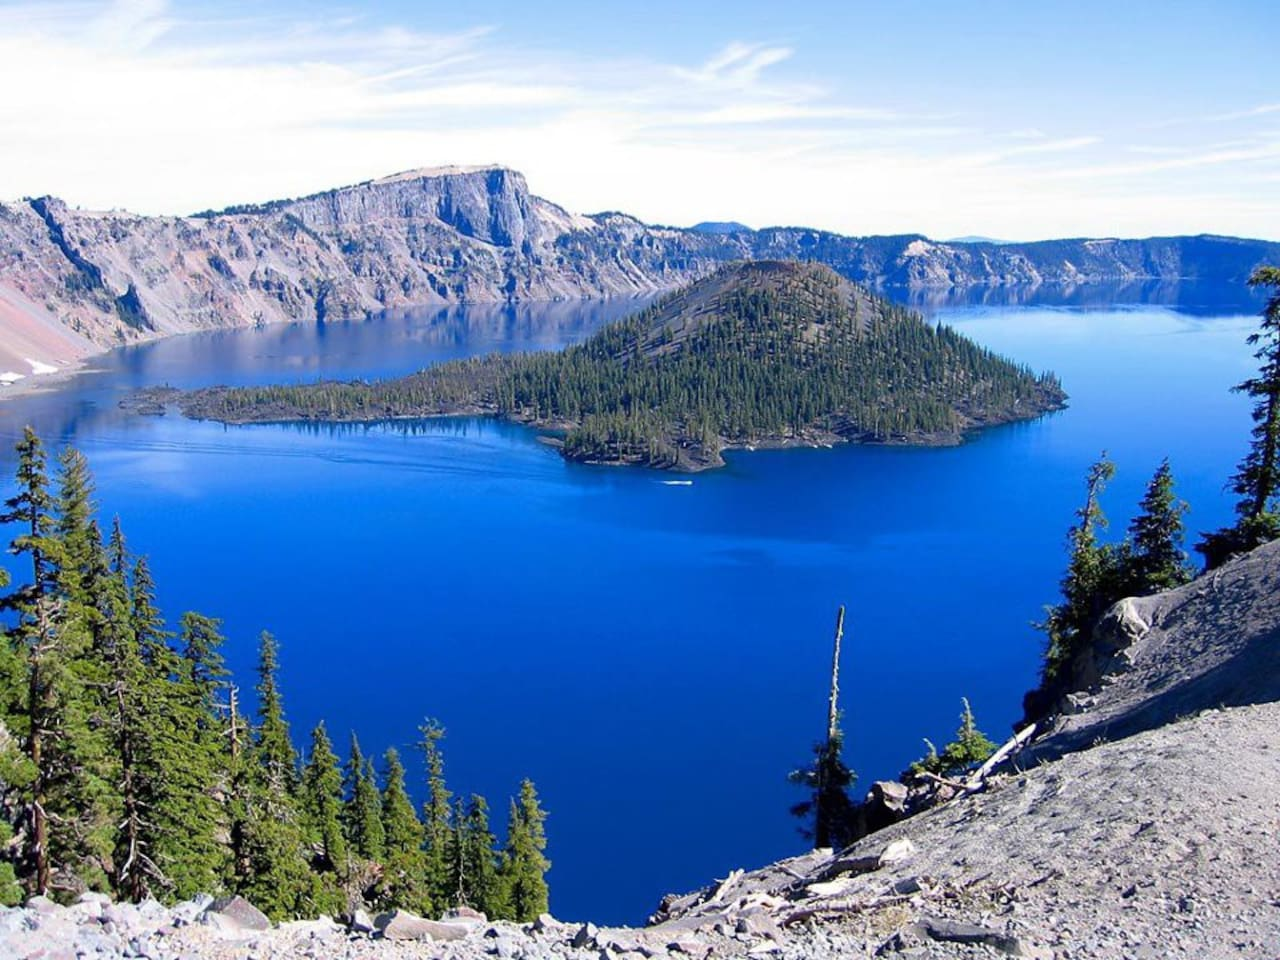 We are called the Gateway to Crater Lake. Rated #1 attraction world wide by CNN. August at Crater Lake National Park. Deepest lake in the US, 7th deepest in the world w/numerous hiking opps too.